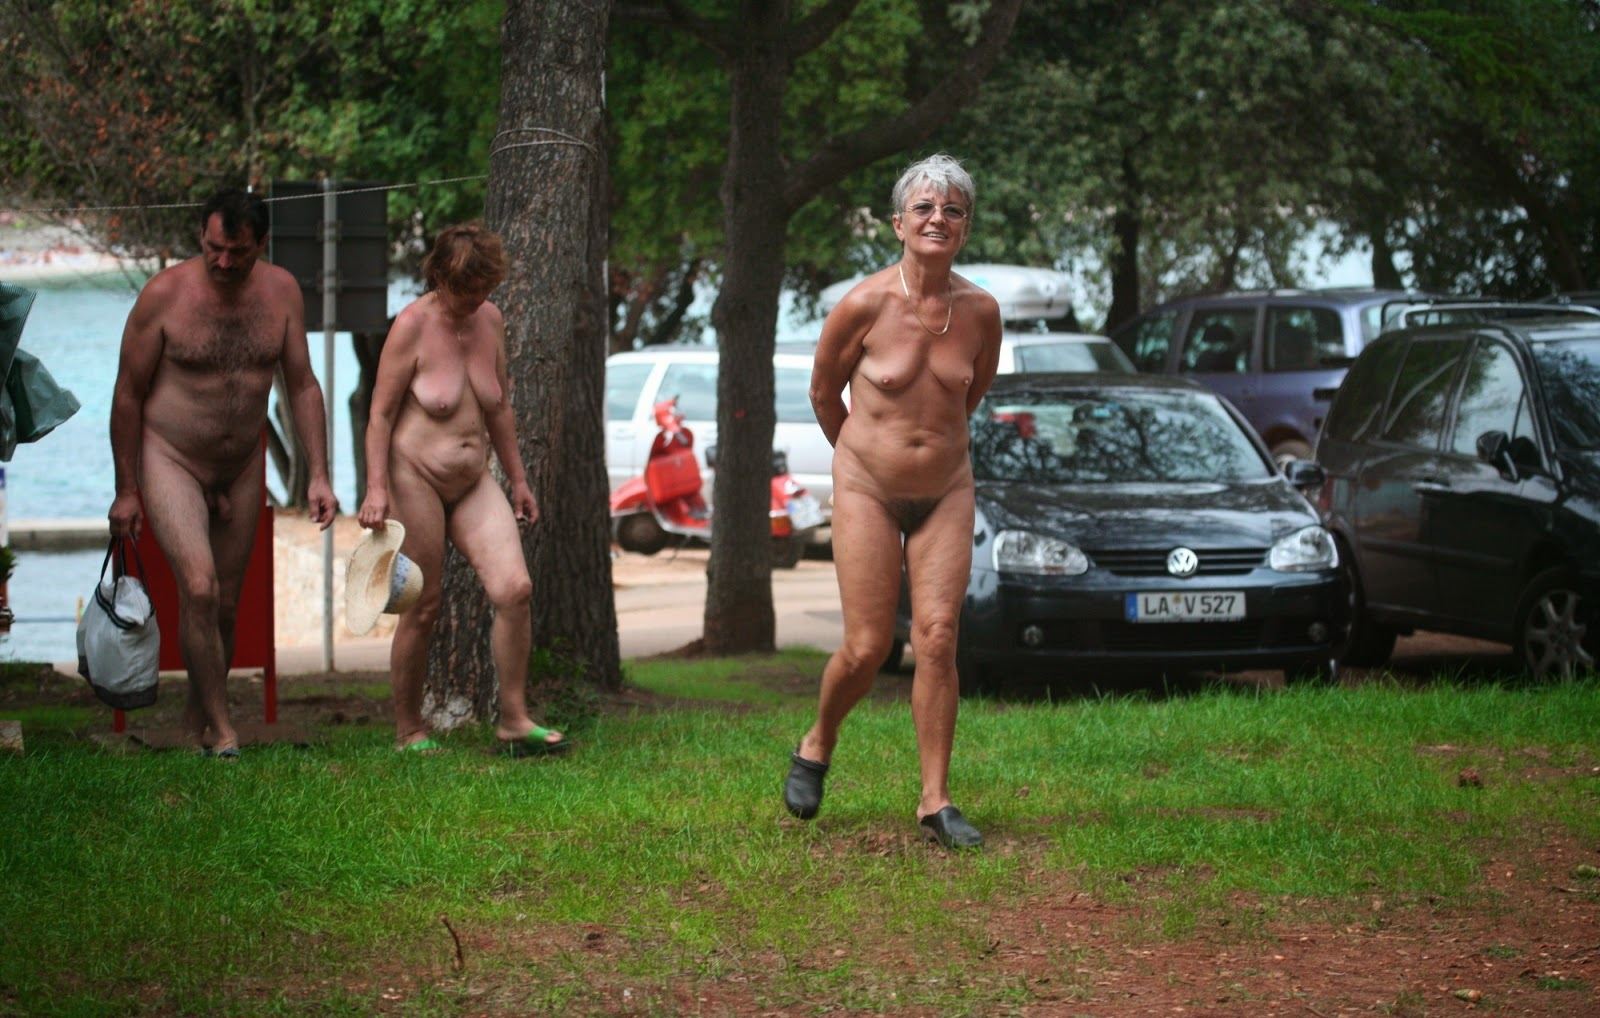 Family nudism blog fuck....would